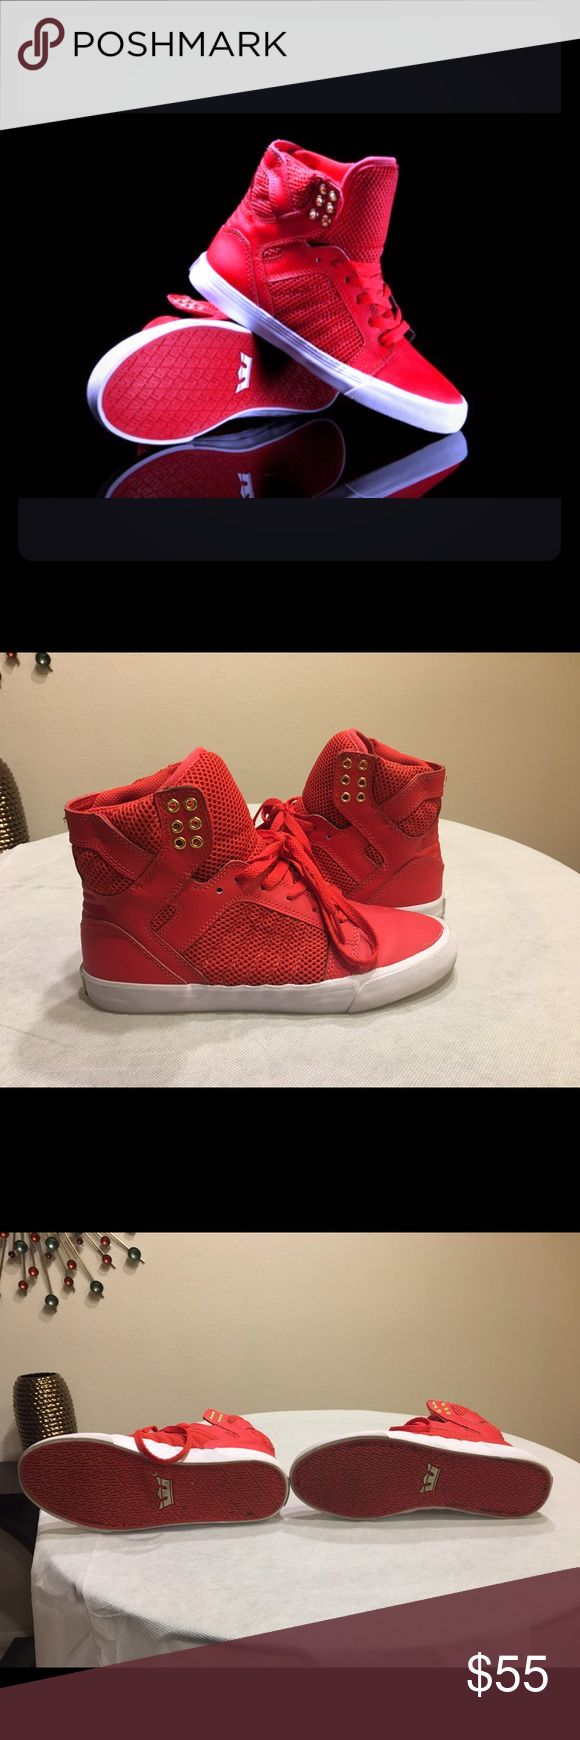 Supra Sneakers Red and white Supra Sneakers. Women's size 8.5. New condition! As you can see in the pictures. Supra Shoes Sneakers